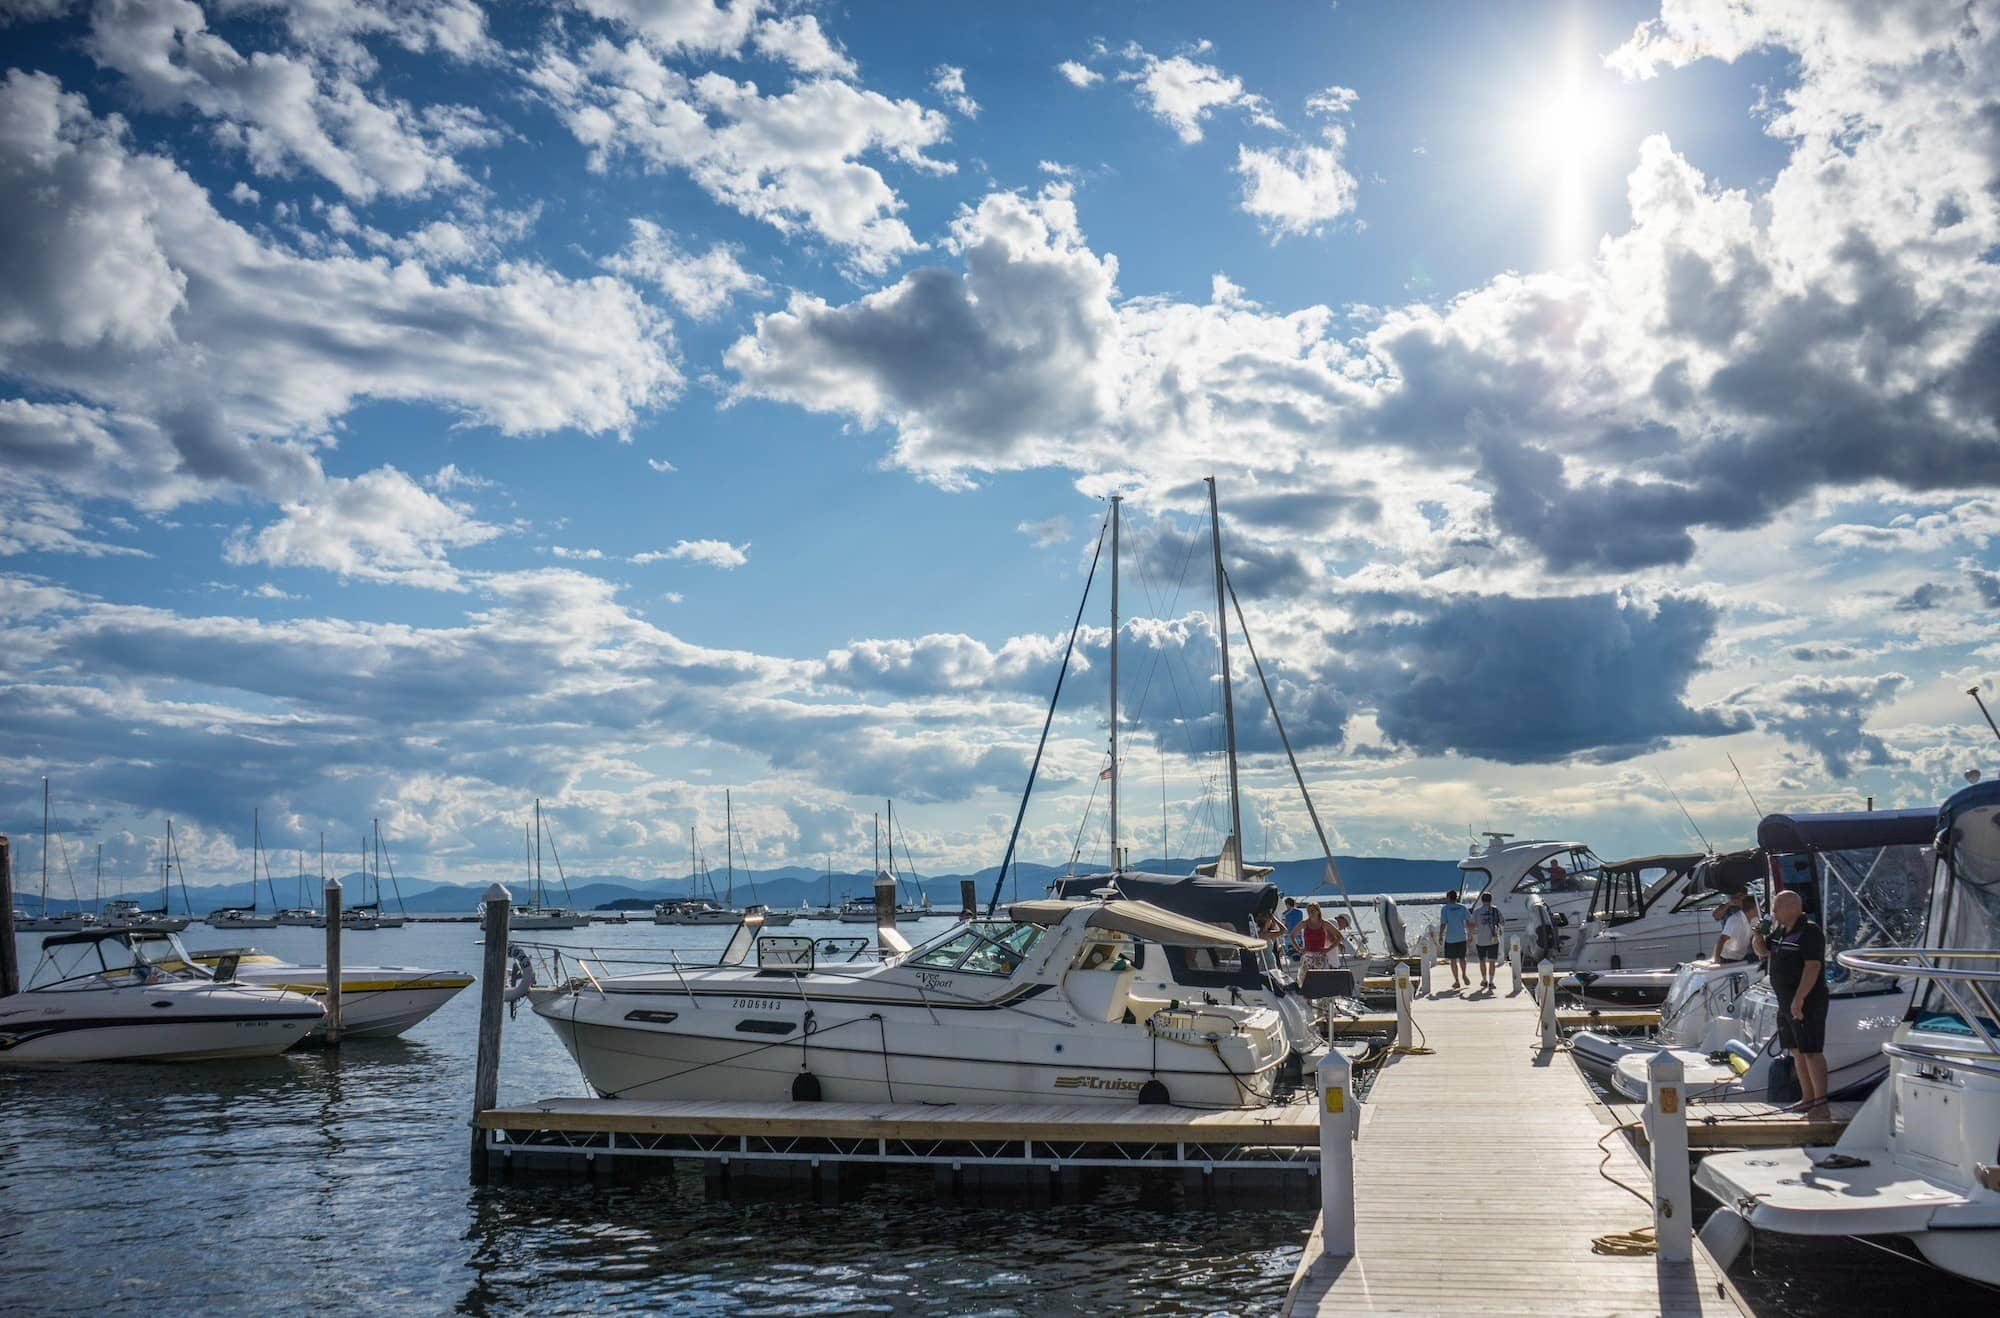 Heading to Vermont? Here is the ultimate 3-day Lake Champlain itinerary for the best places to see, things to do & where to explore around Burlington.